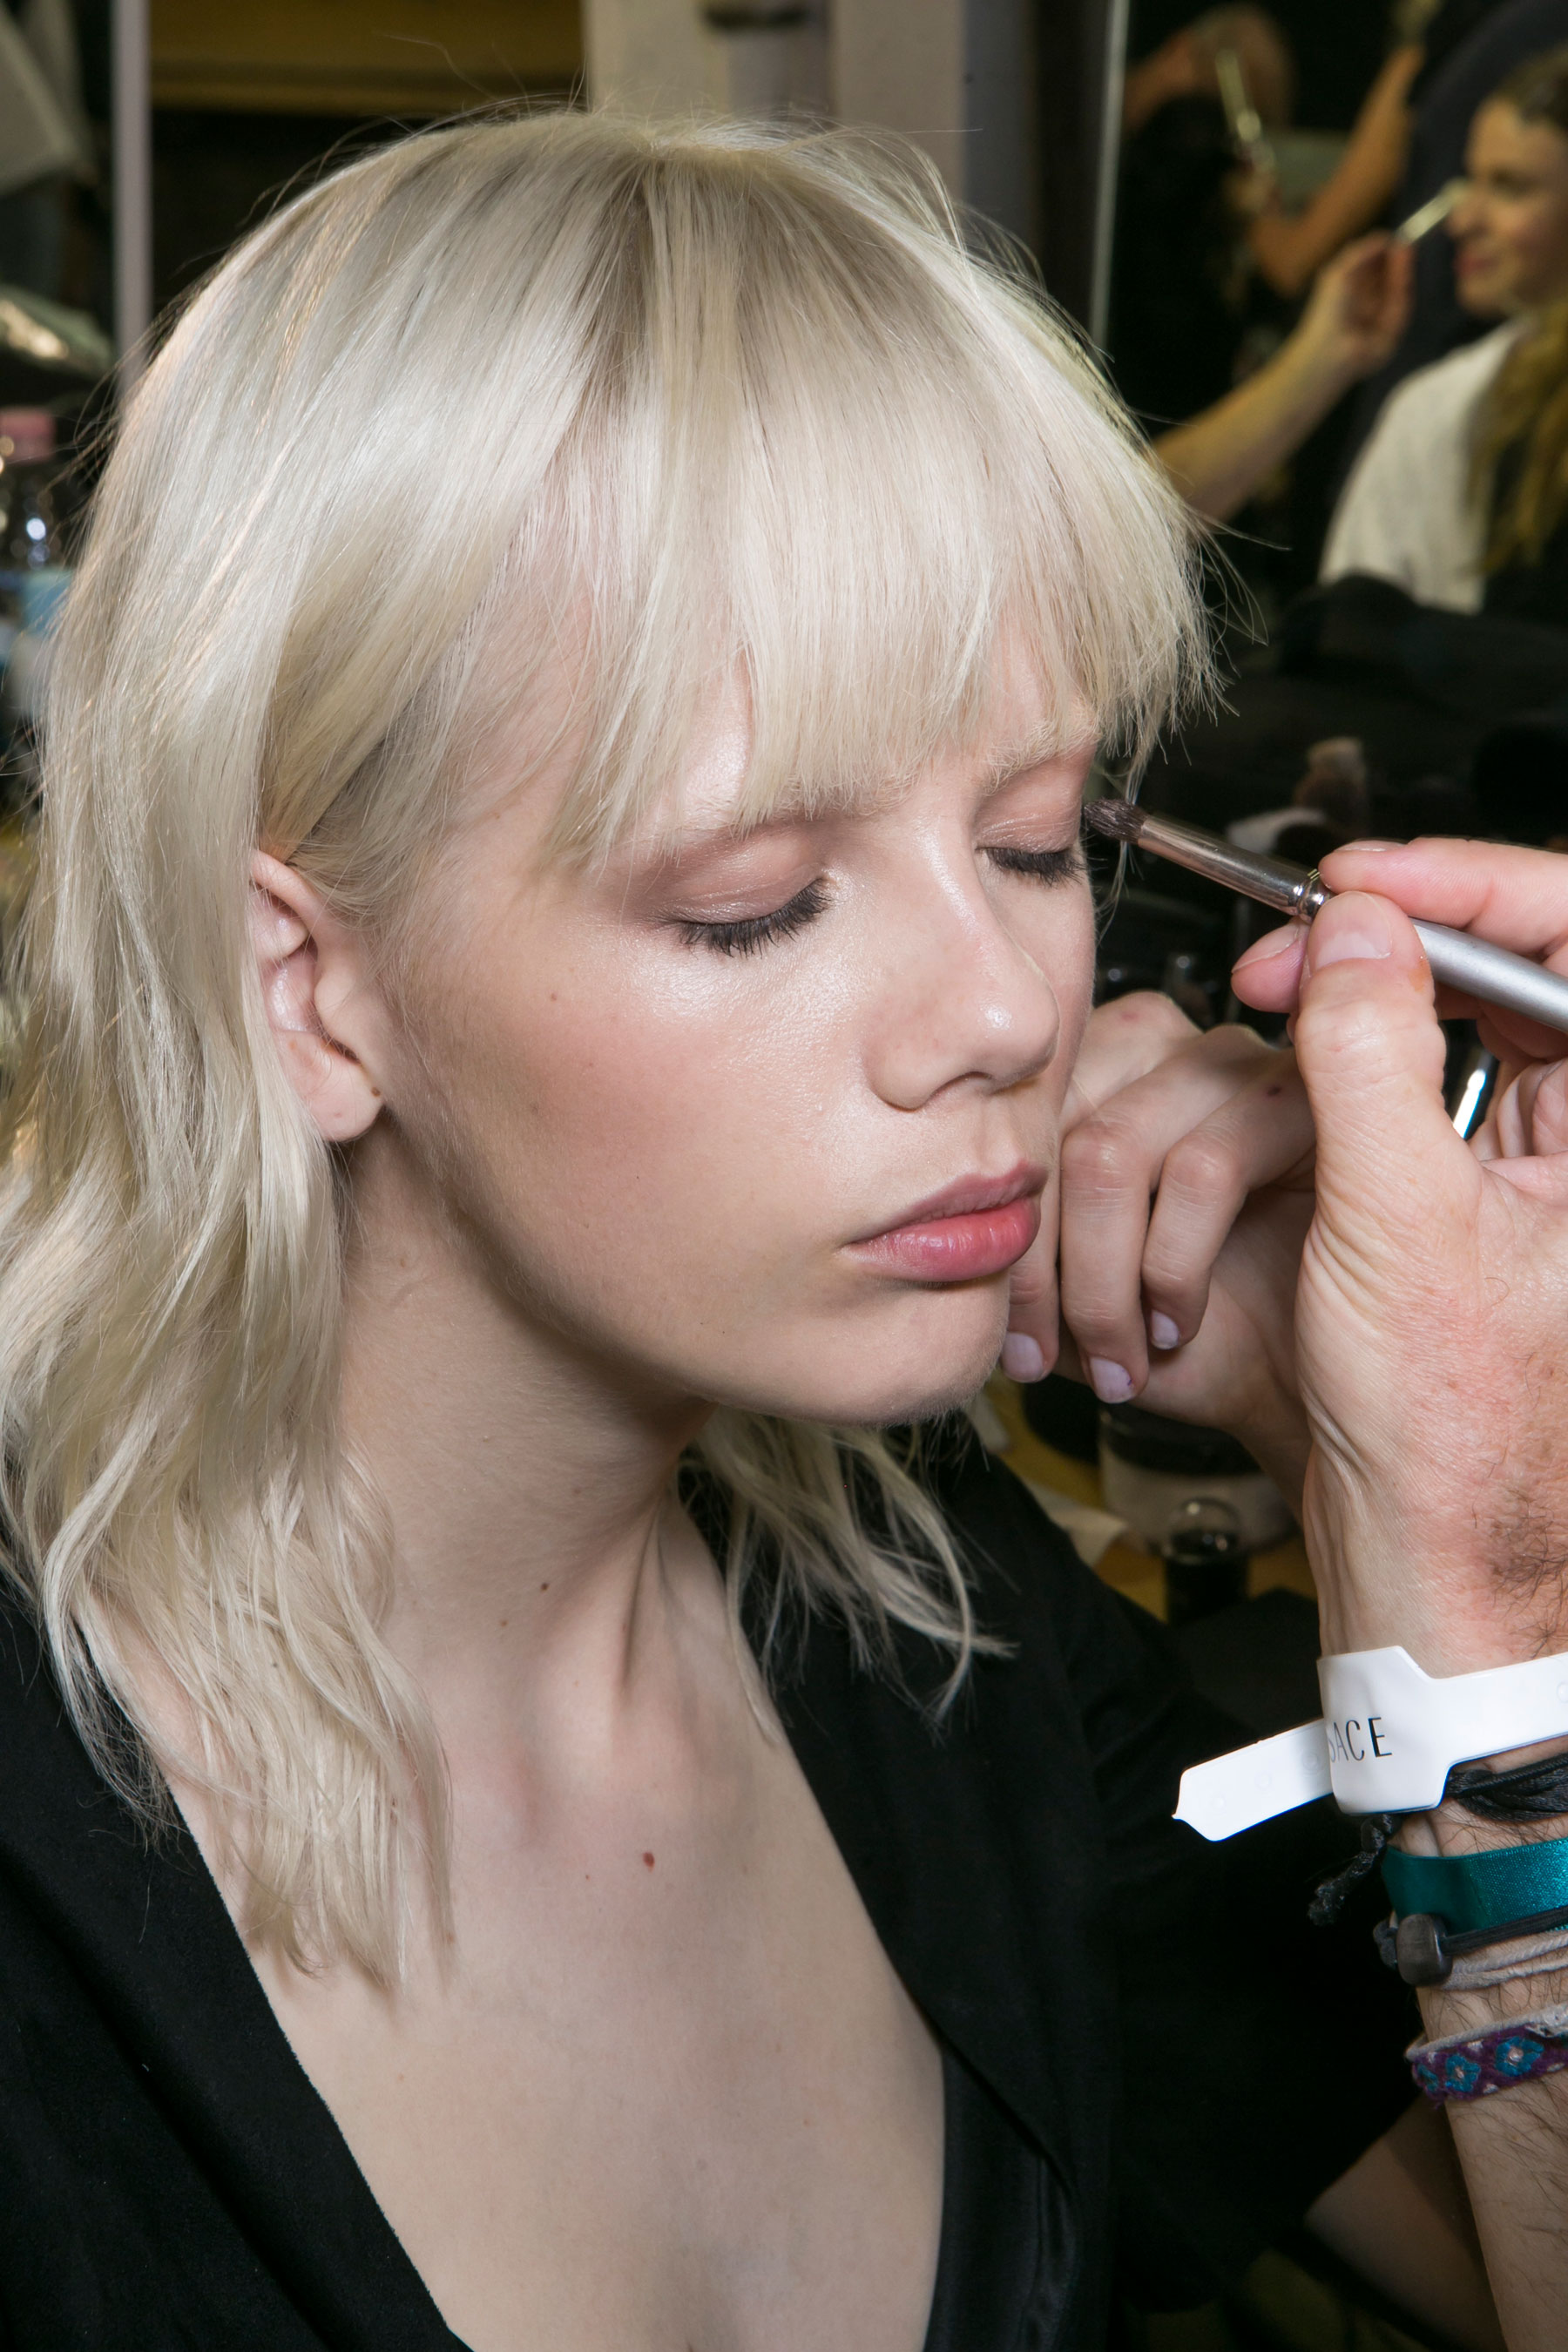 versace-backstage-beauty-spring-2016-fashion-show-the-impression-013